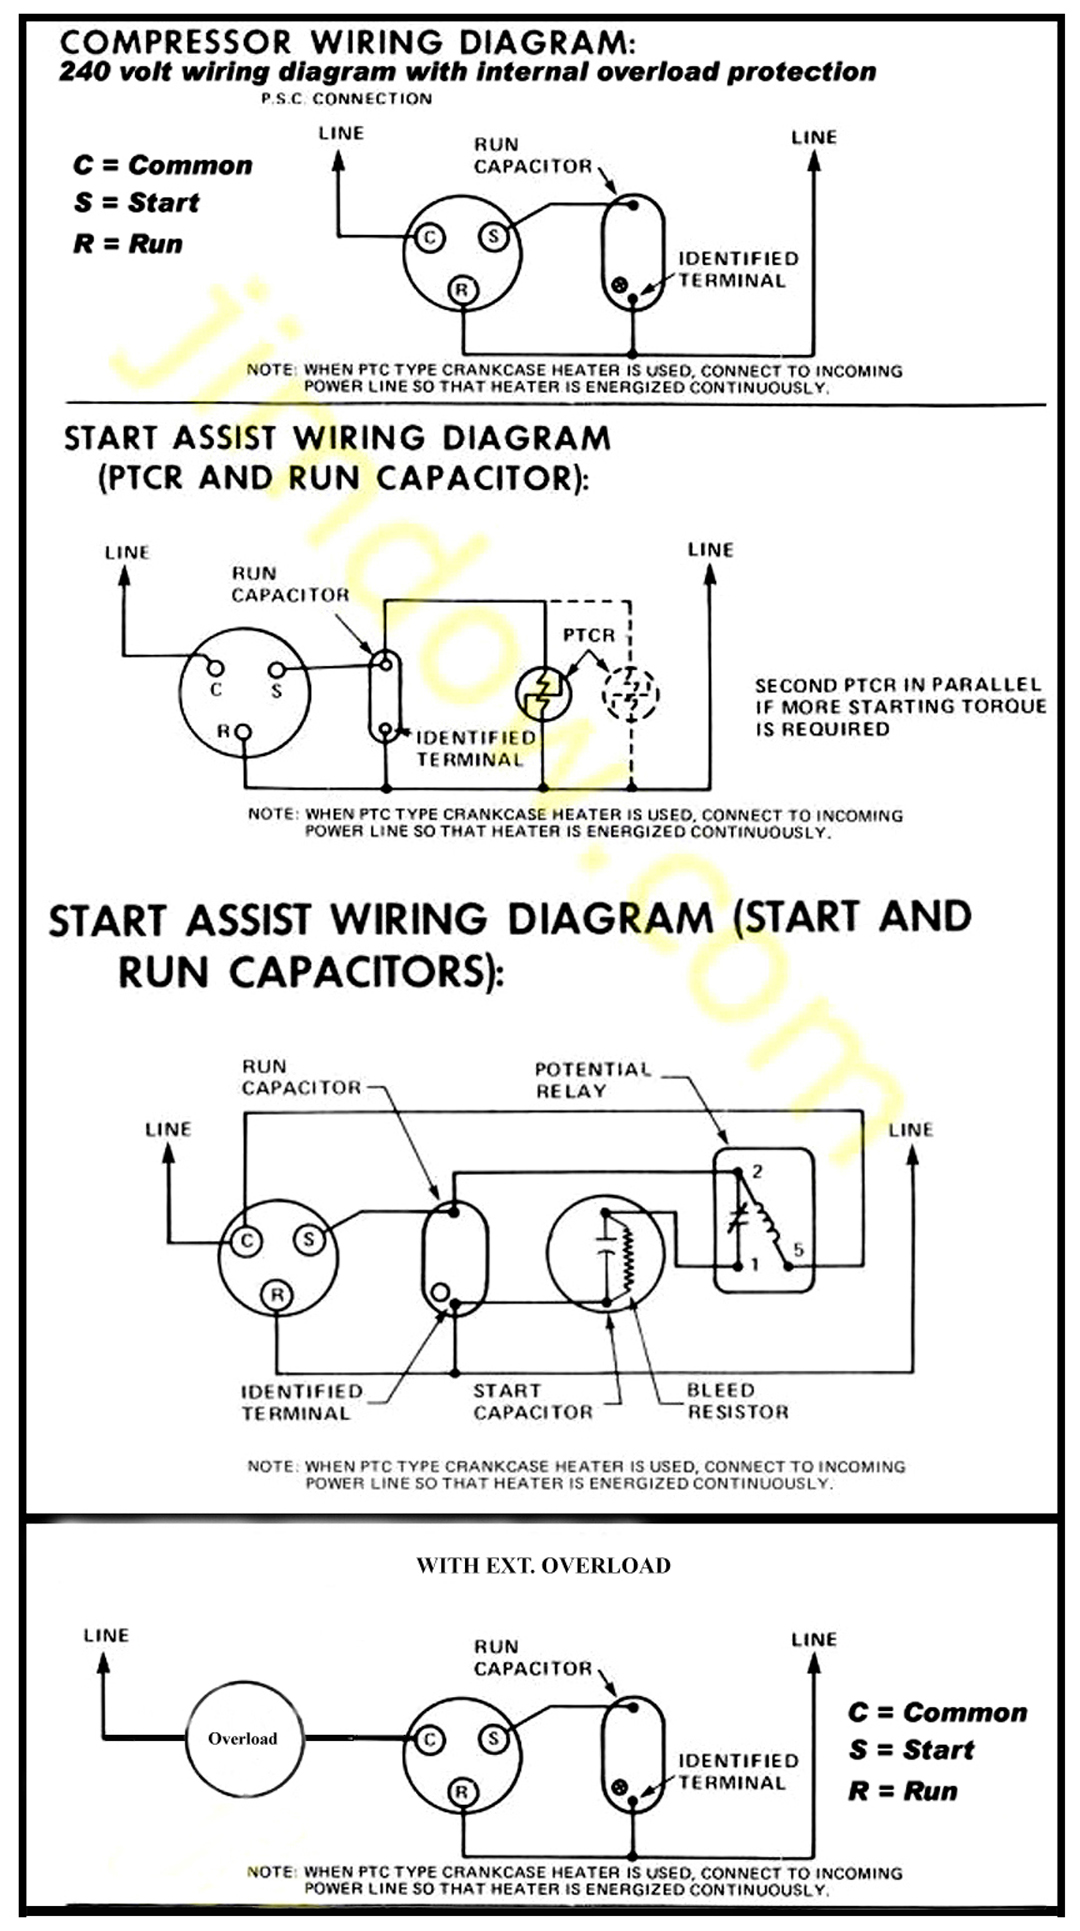 Air Conditioner Condenser Conditioning Wiring Diagram on home air conditioning wiring diagrams, trane air conditioners wiring diagrams, automotive air conditioning wiring diagrams, mitsubishi air conditioners wiring diagrams, central air conditioning wiring diagrams, window air conditioning wiring diagrams, auto air conditioning wiring diagrams, carrier air conditioning wiring diagrams, york air conditioners wiring diagrams,